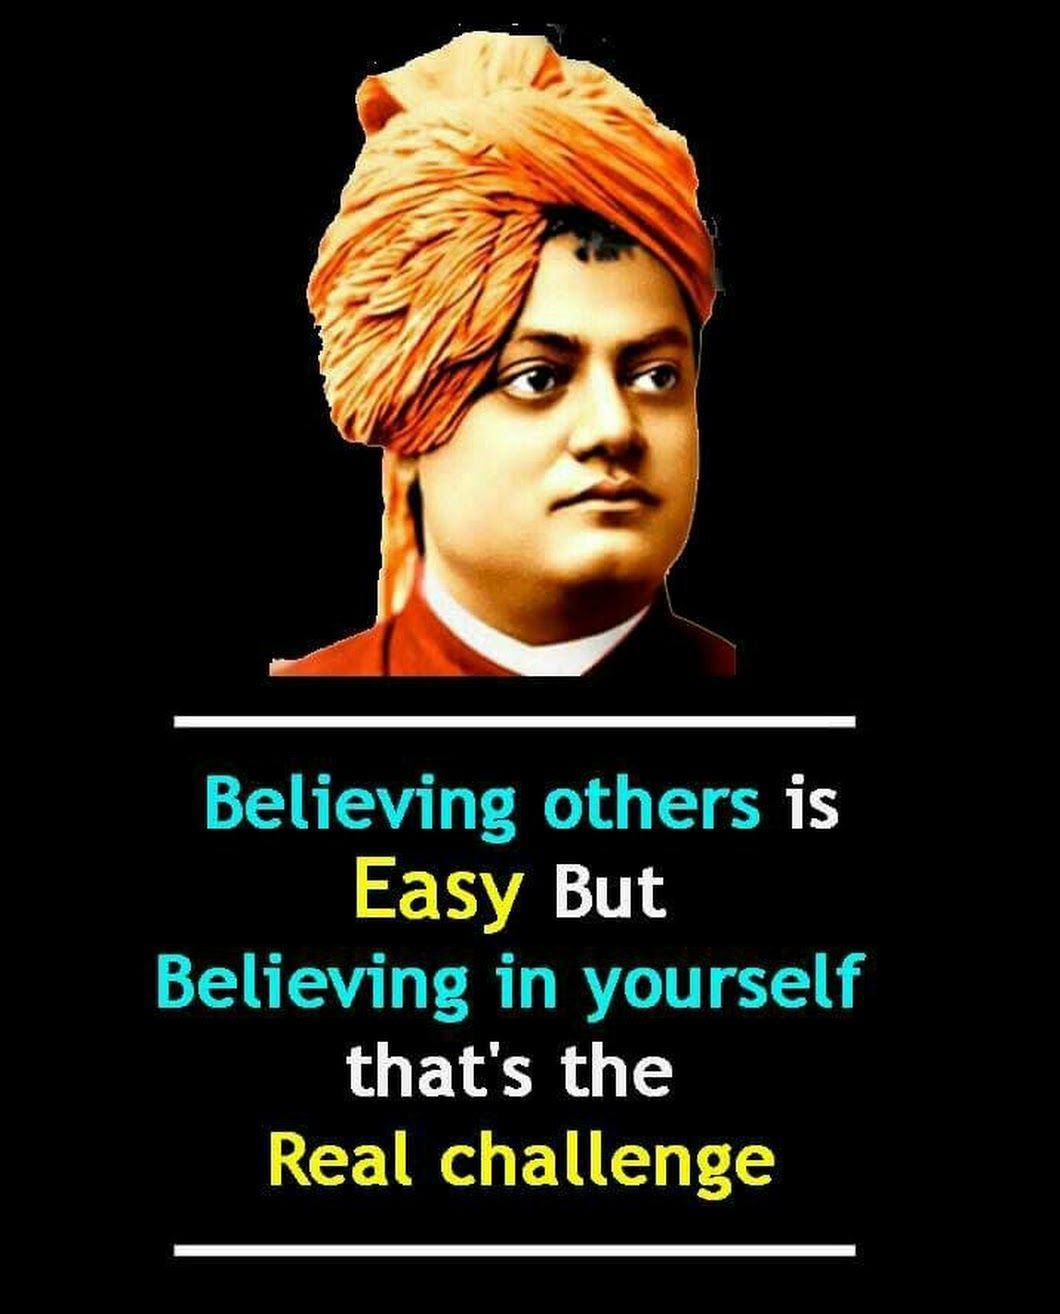 Inspirational Quotes By Swami Vivekananda For Students